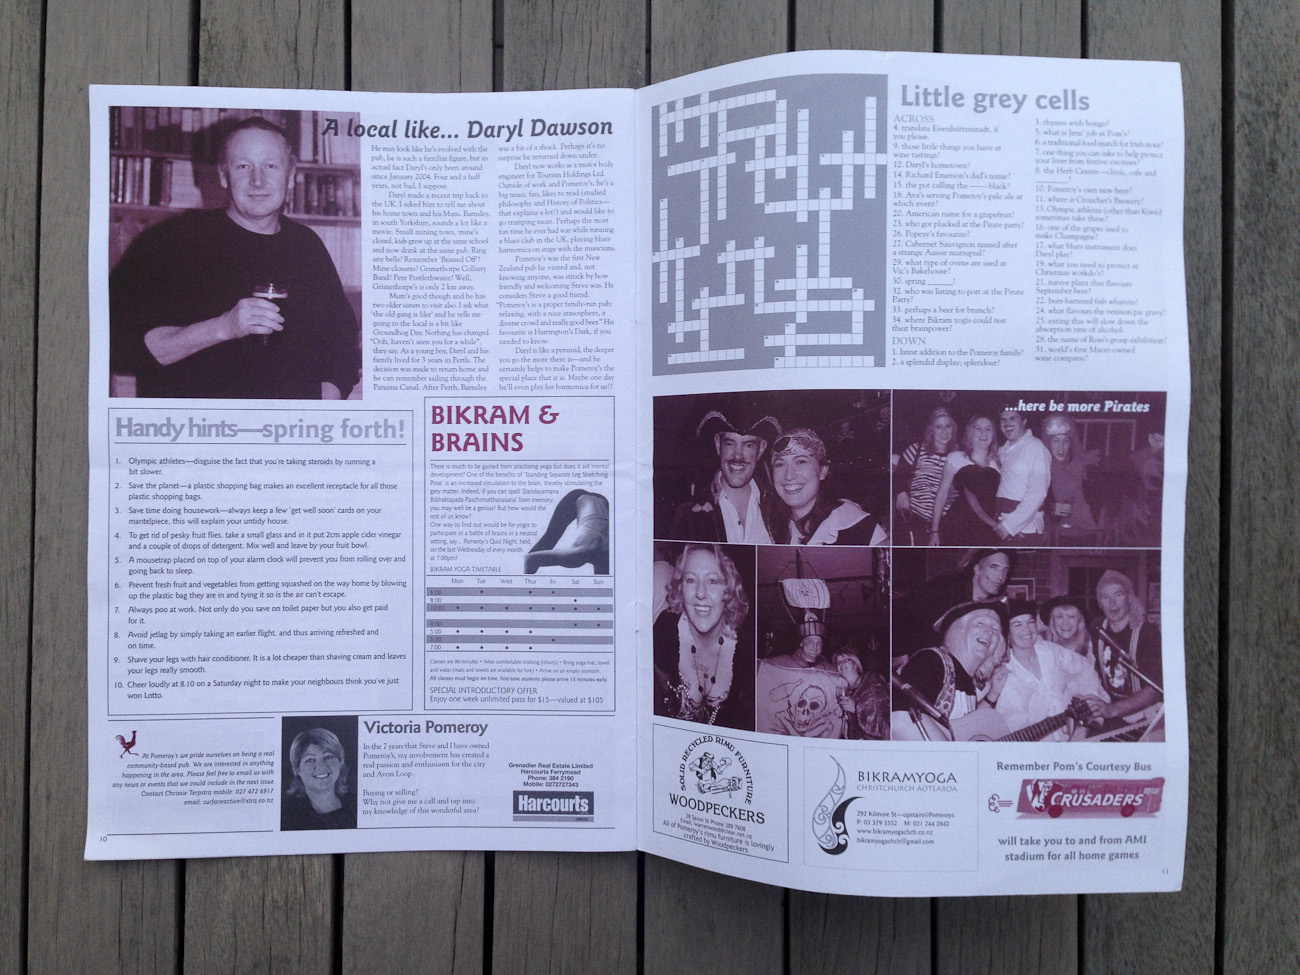 Pomeroy's Press newsletter, pages six and seven spread.